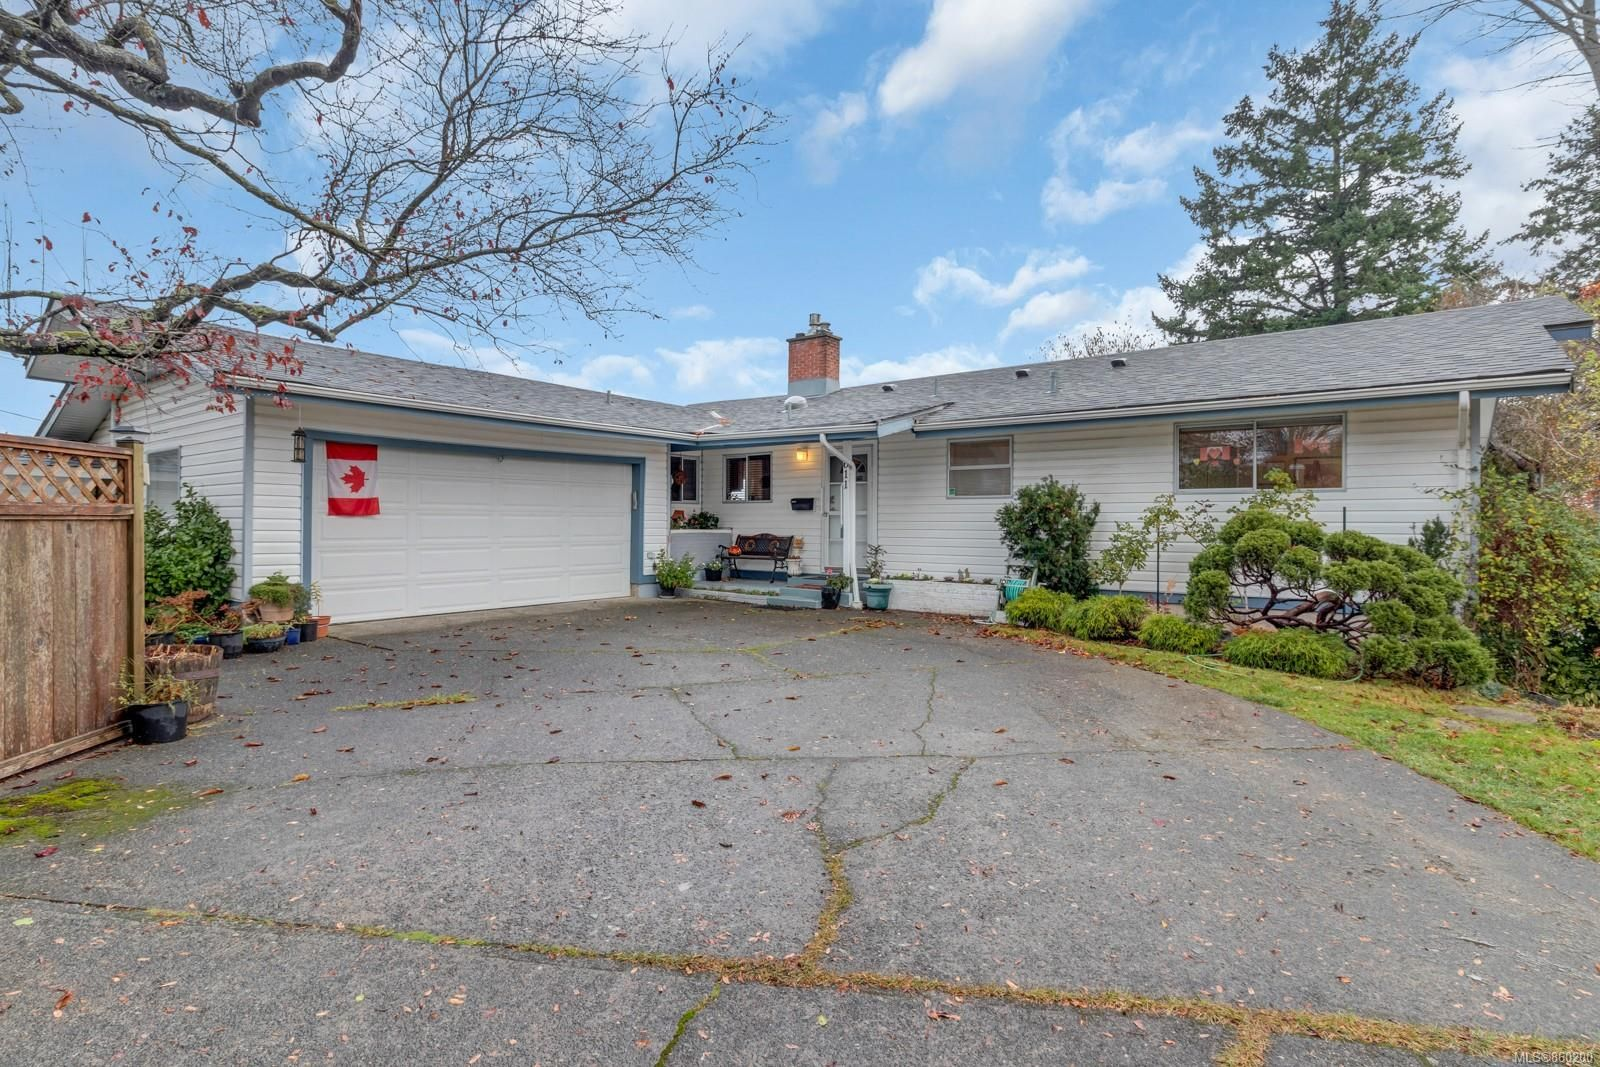 Main Photo: 611 Colwyn St in : CR Campbell River Central Full Duplex for sale (Campbell River)  : MLS®# 860200